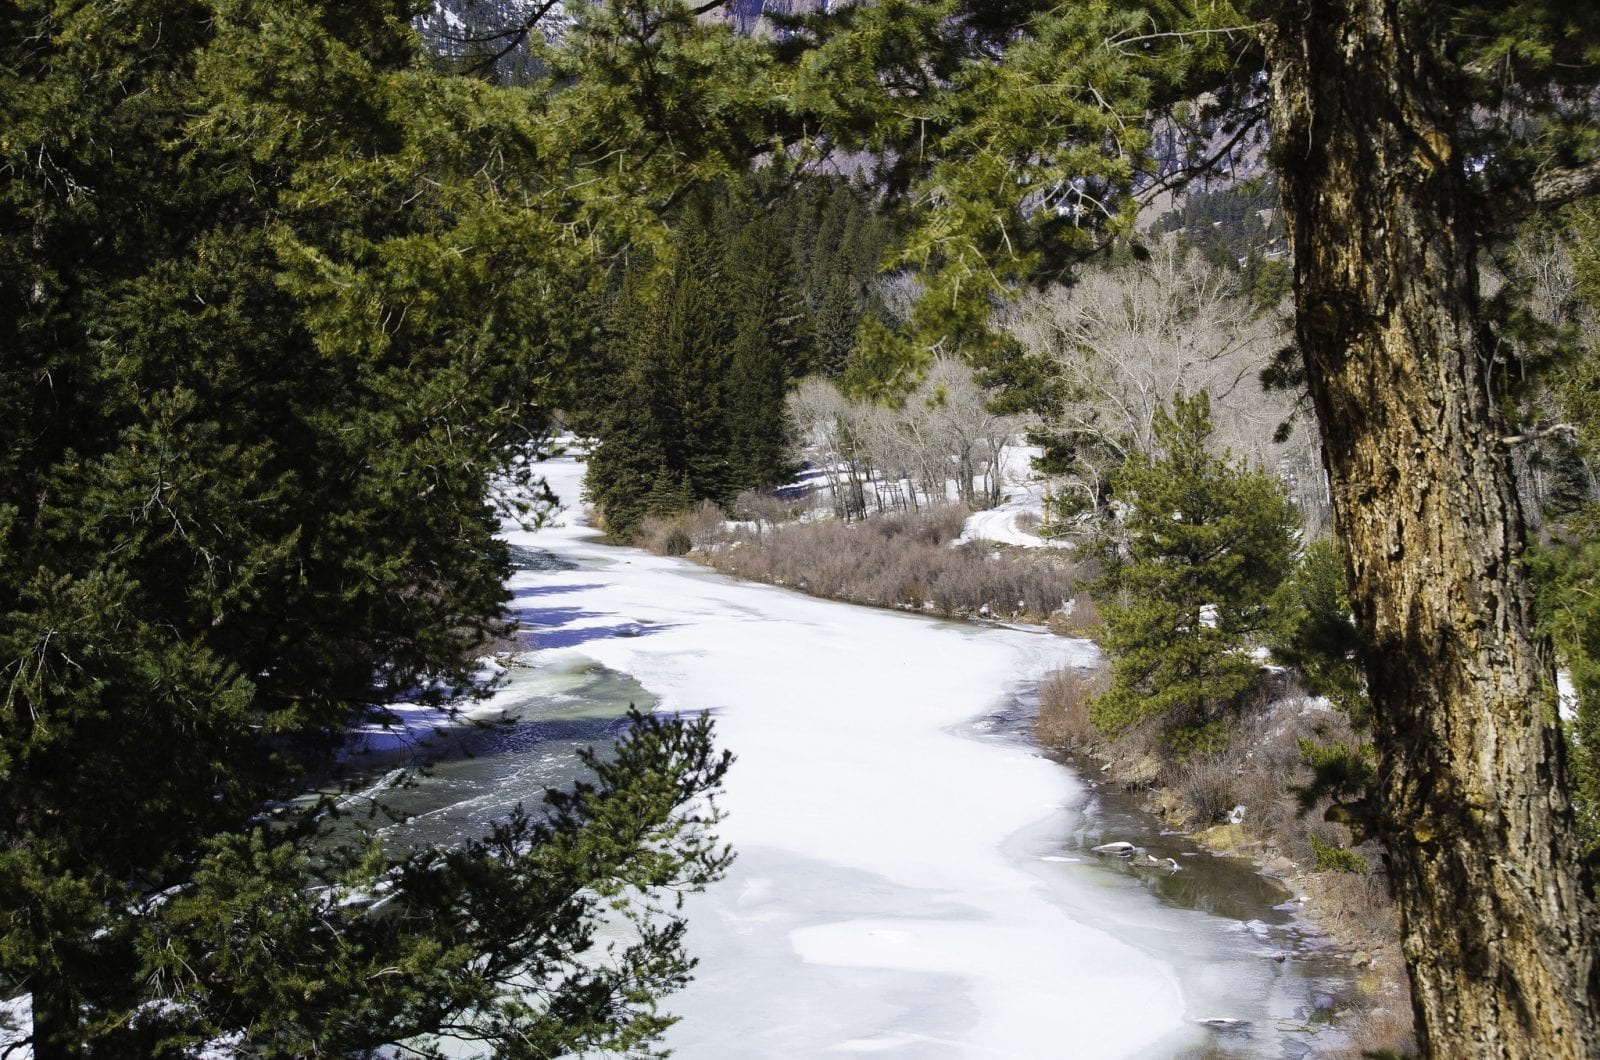 Image of an ice-covered Rio Grande River